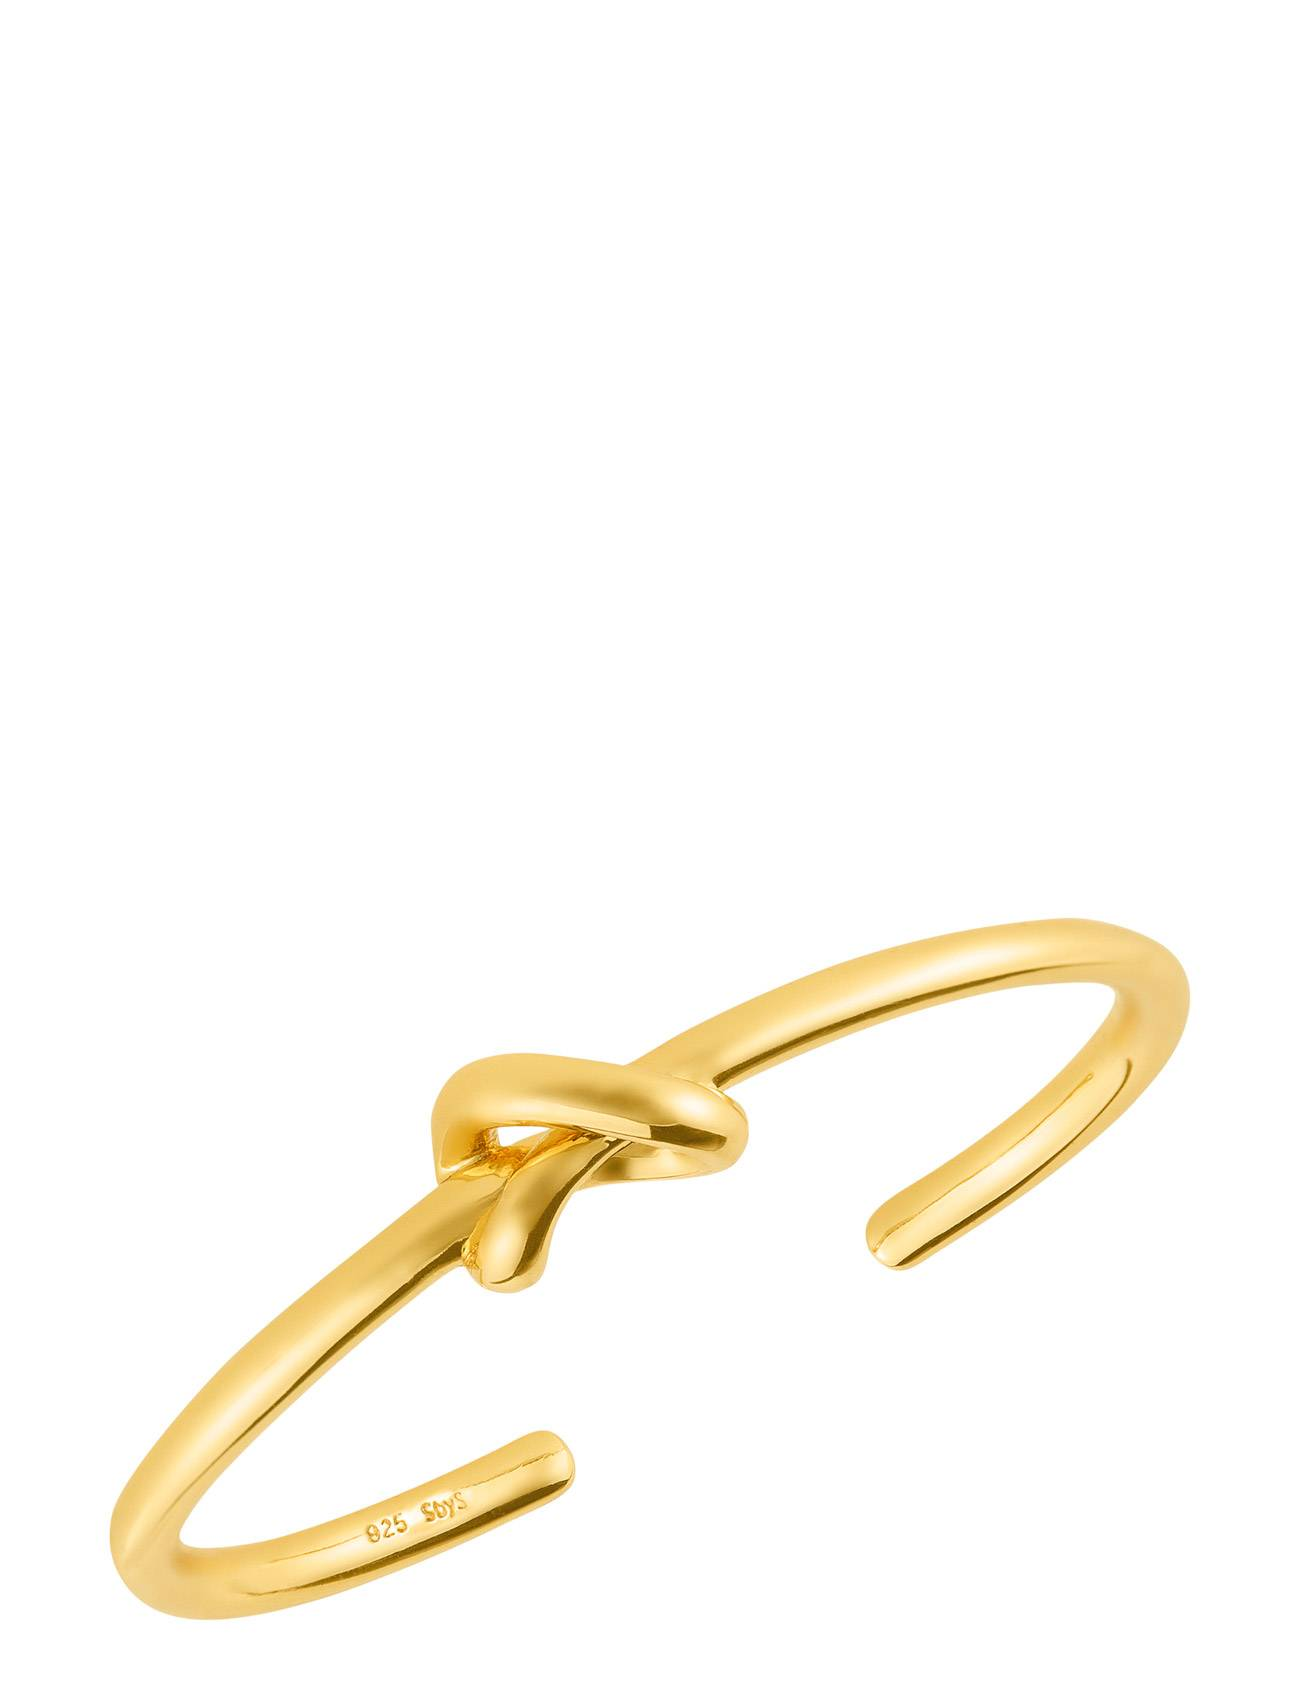 SOPHIE by SOPHIE Knot Cuff